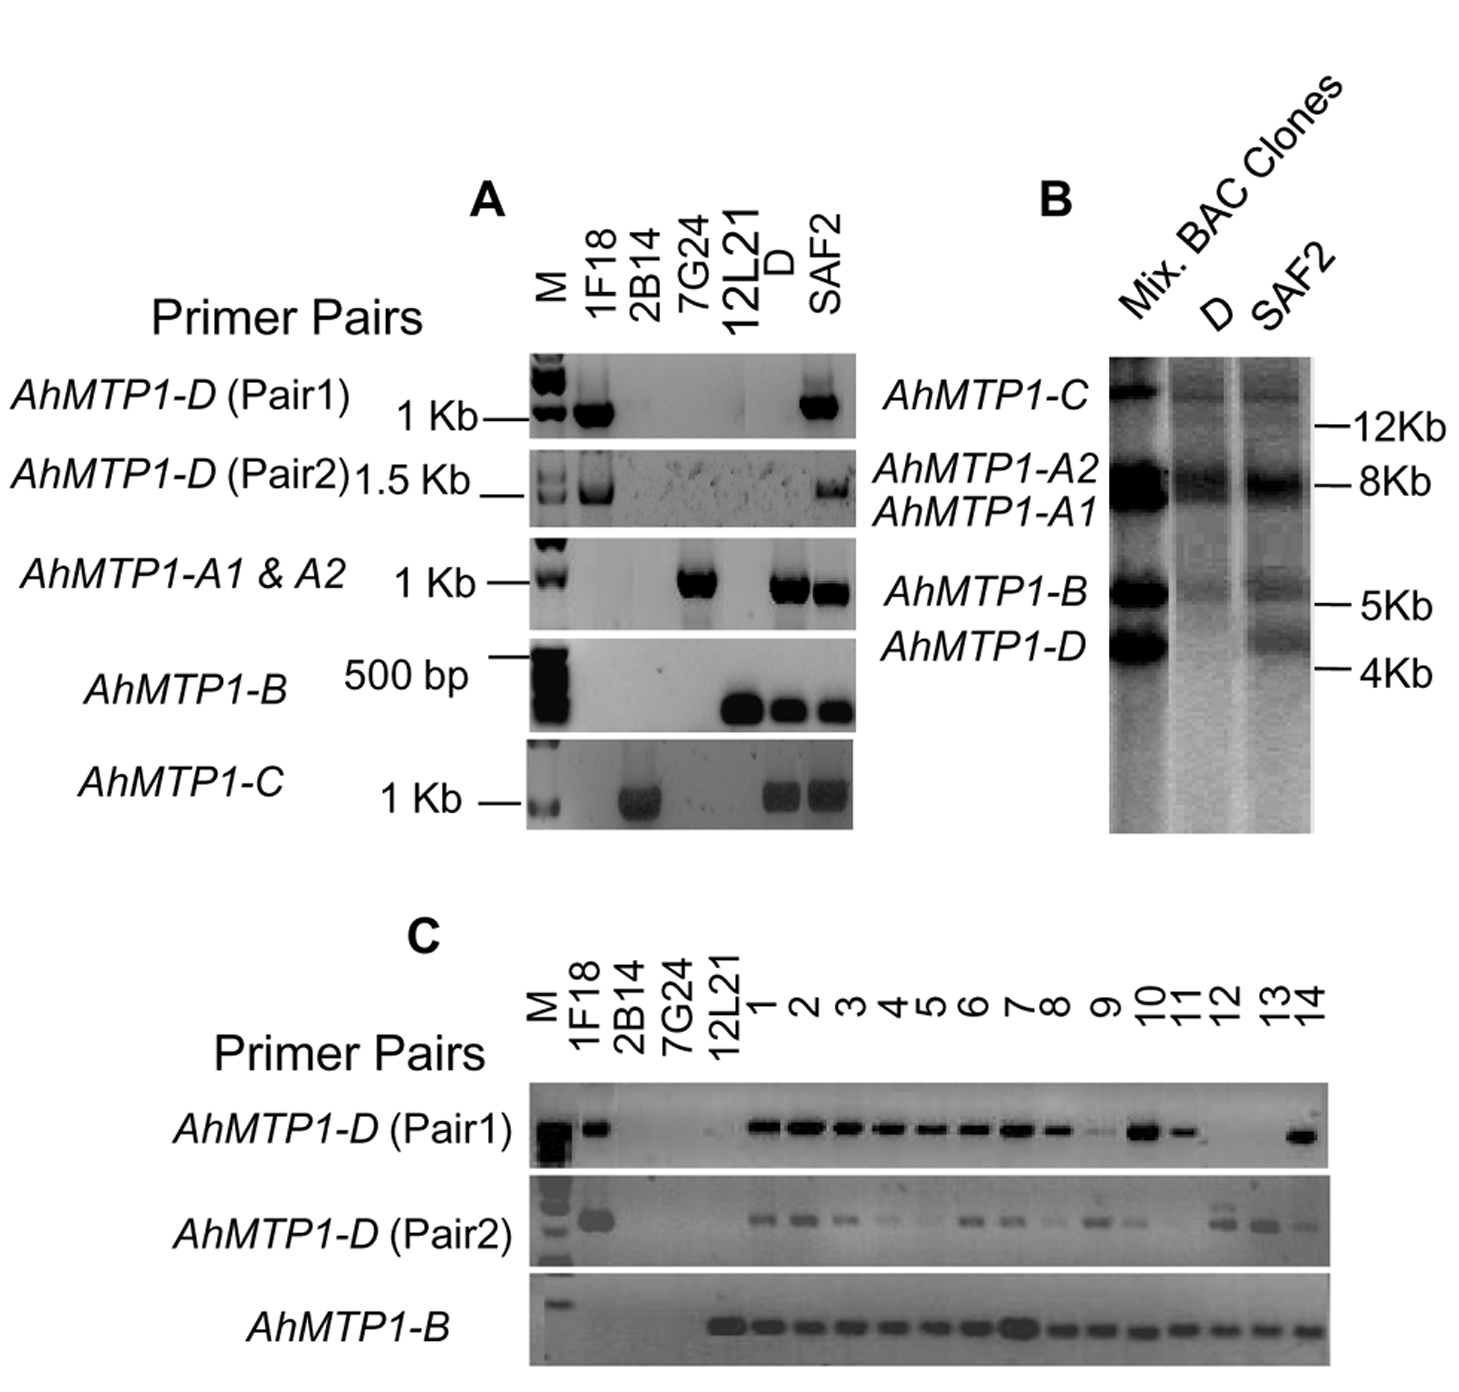 Analysis of the presence of the <i>MTP1-D</i> paralogue in different <i>A. halleri</i> genotypes.